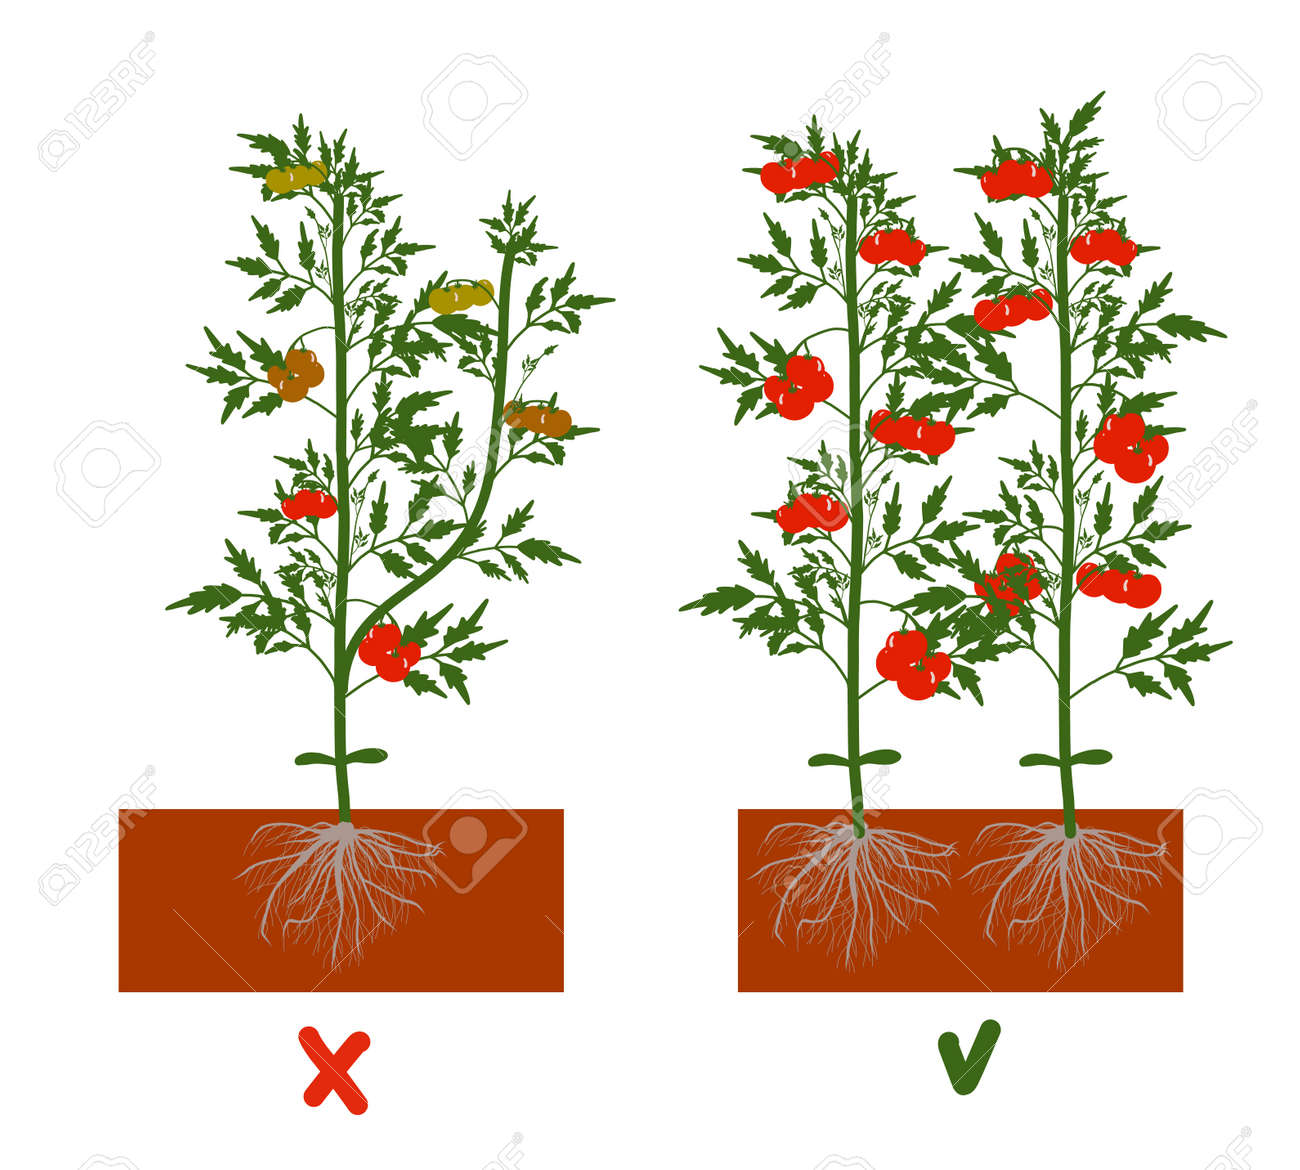 Planting tomatoes in the ground. Growing a tomato. Seedling. Disembarkation in the greenhouse. Vegetable growing technology. Horticulture. Determinant and indeterminate hybrids. - 168914931